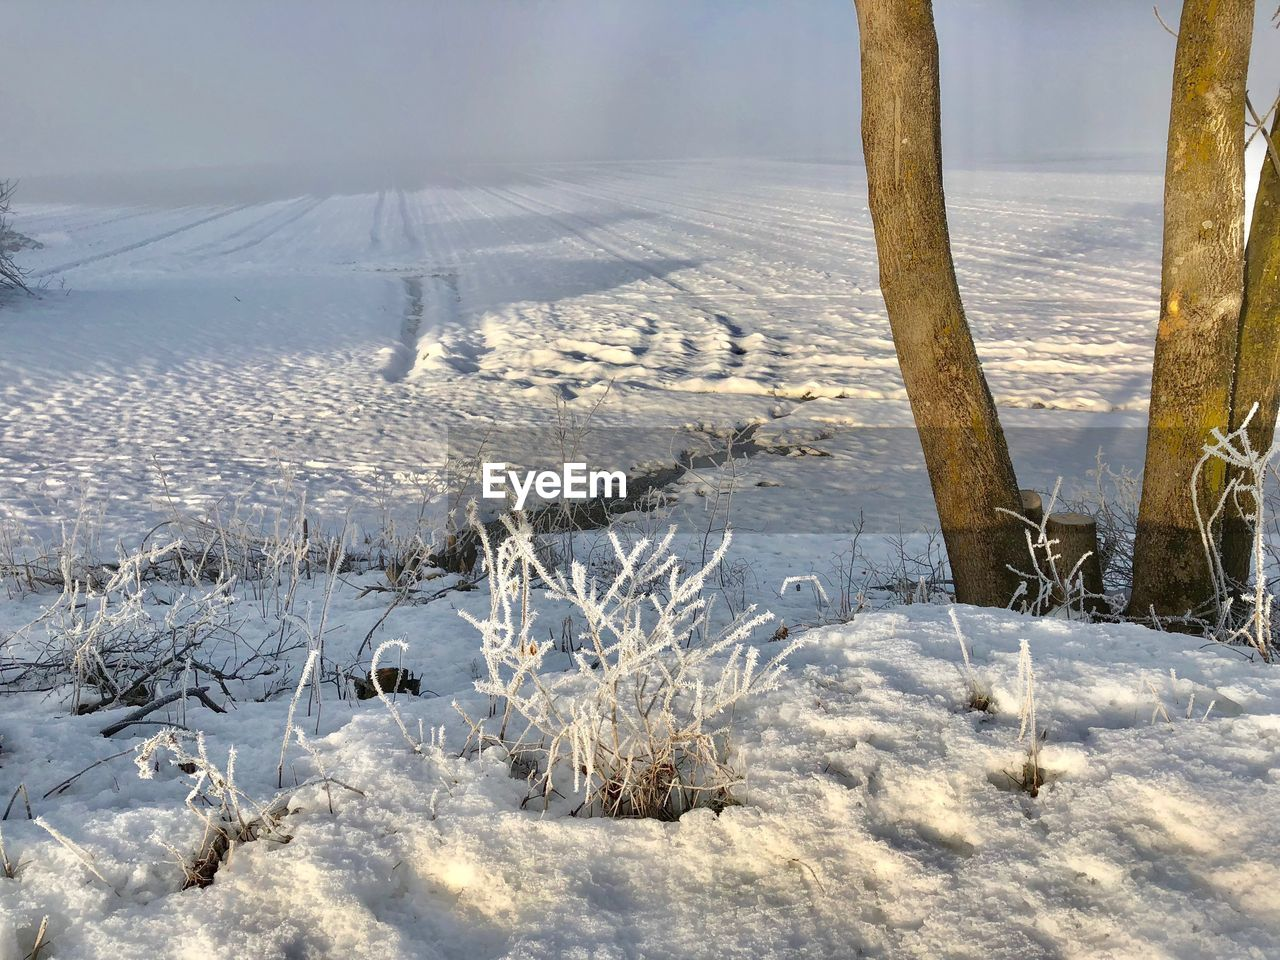 snow, cold temperature, winter, no people, covering, nature, plant, beauty in nature, land, white color, field, tranquility, day, landscape, tranquil scene, environment, frozen, scenics - nature, tree, outdoors, extreme weather